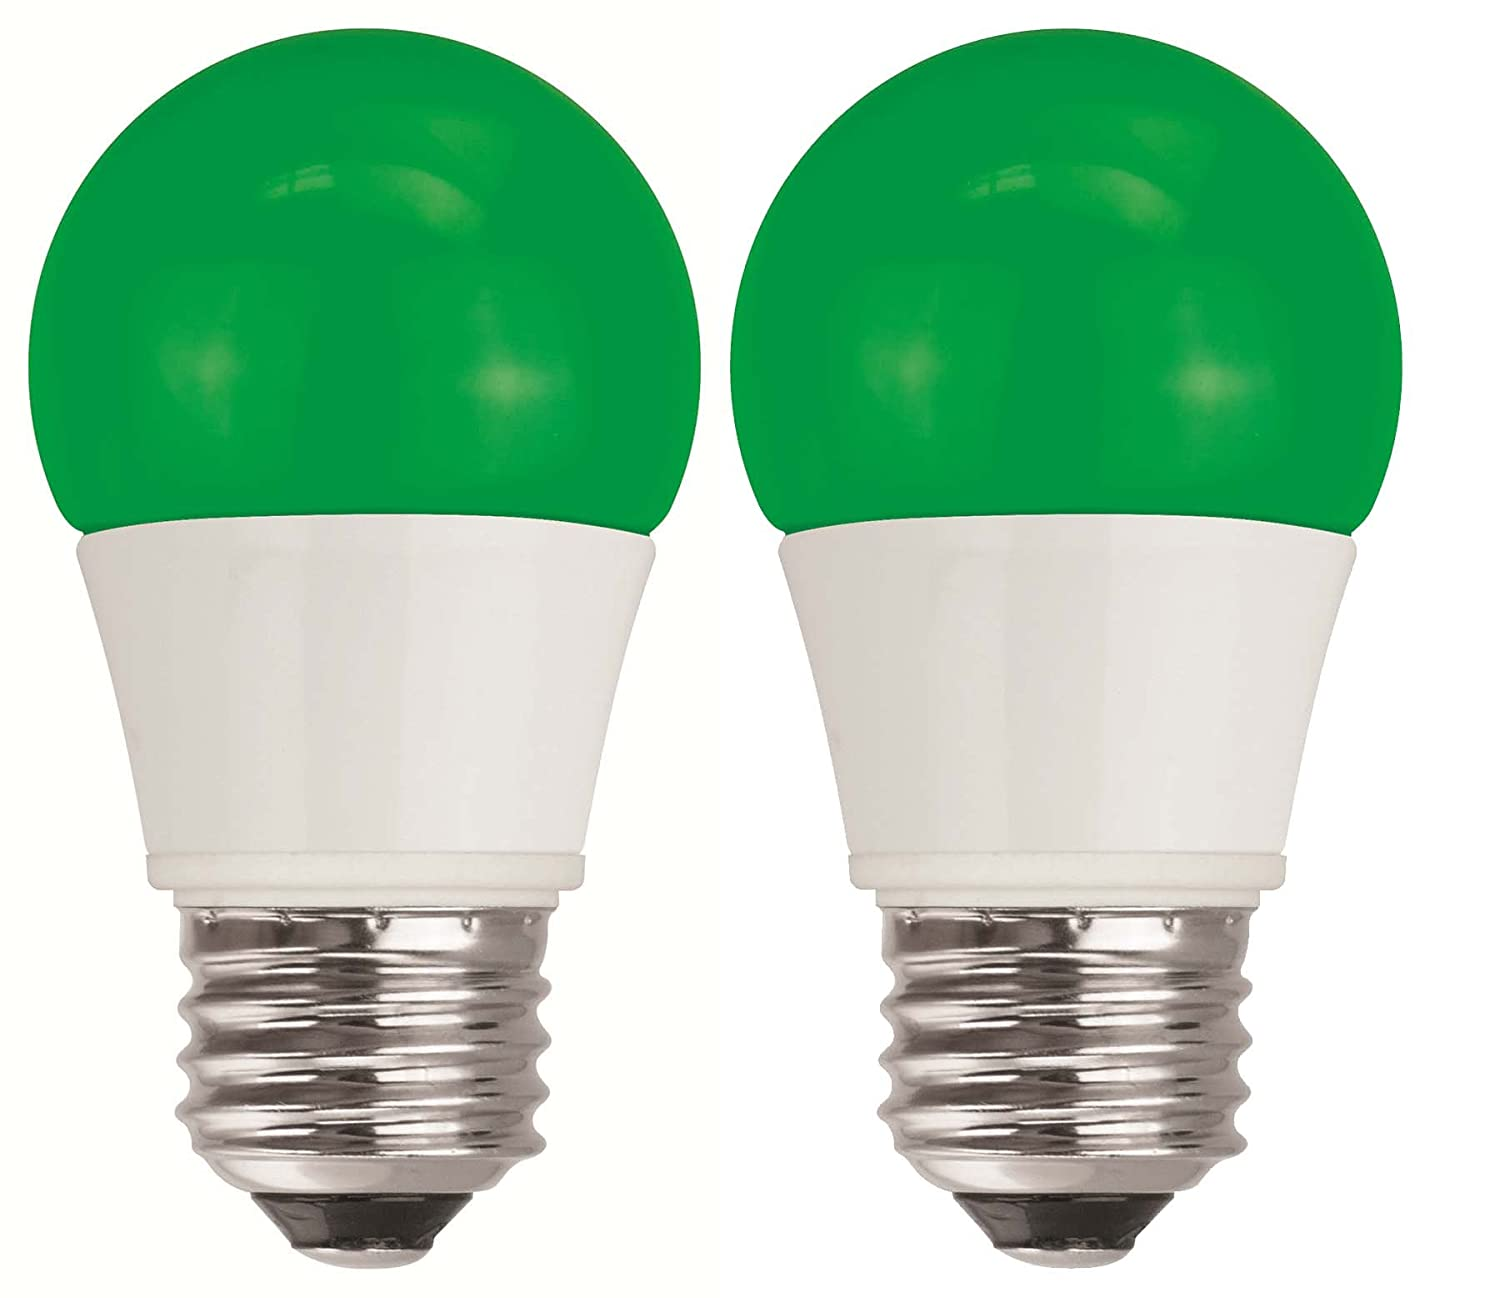 gr the depot p light meilo home led colored green pack bulbs bulb